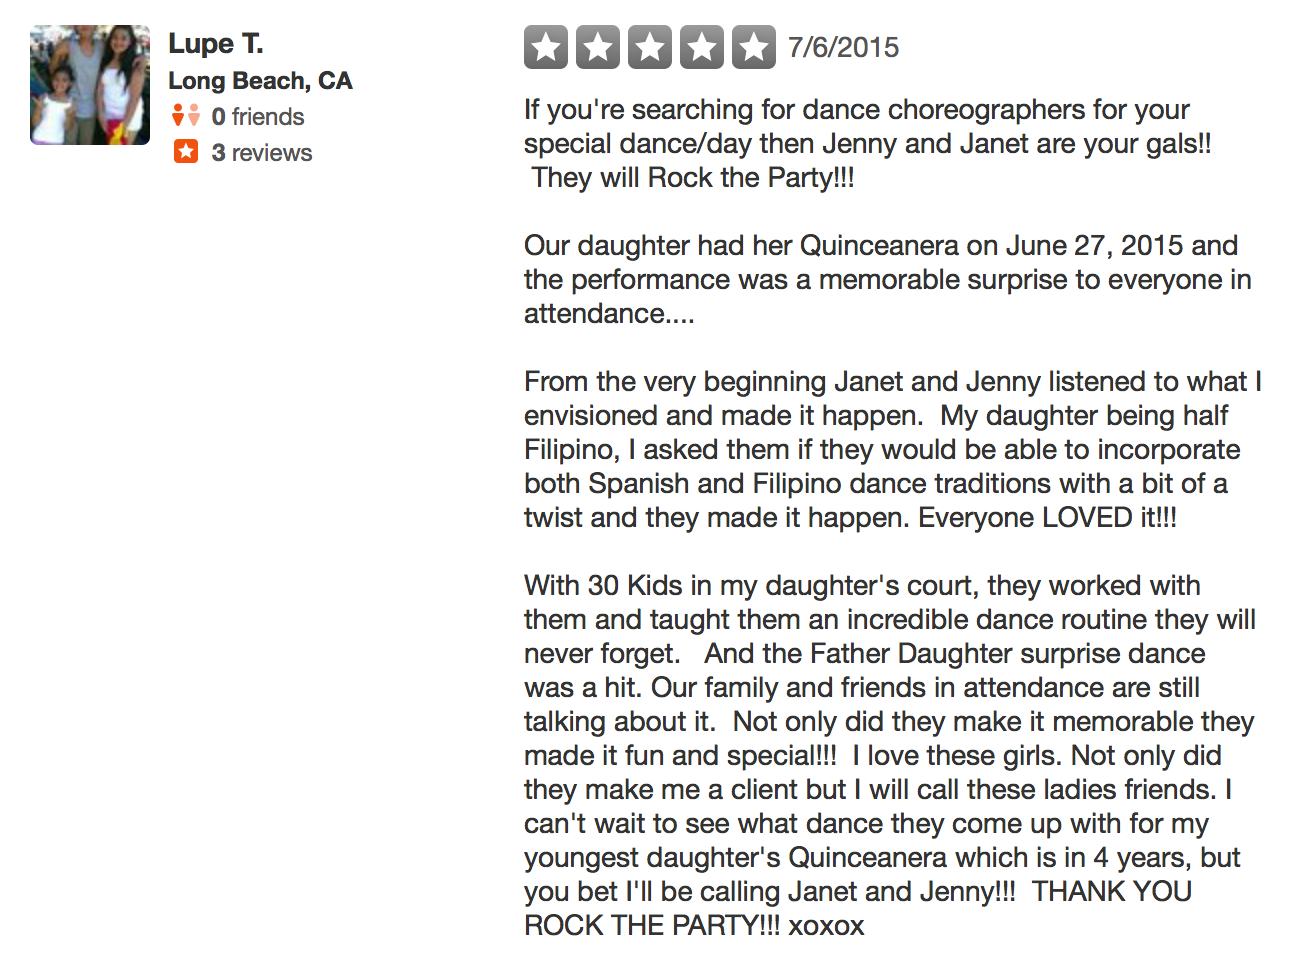 We graciously appreciated their review that got filtered on Yelp. <3